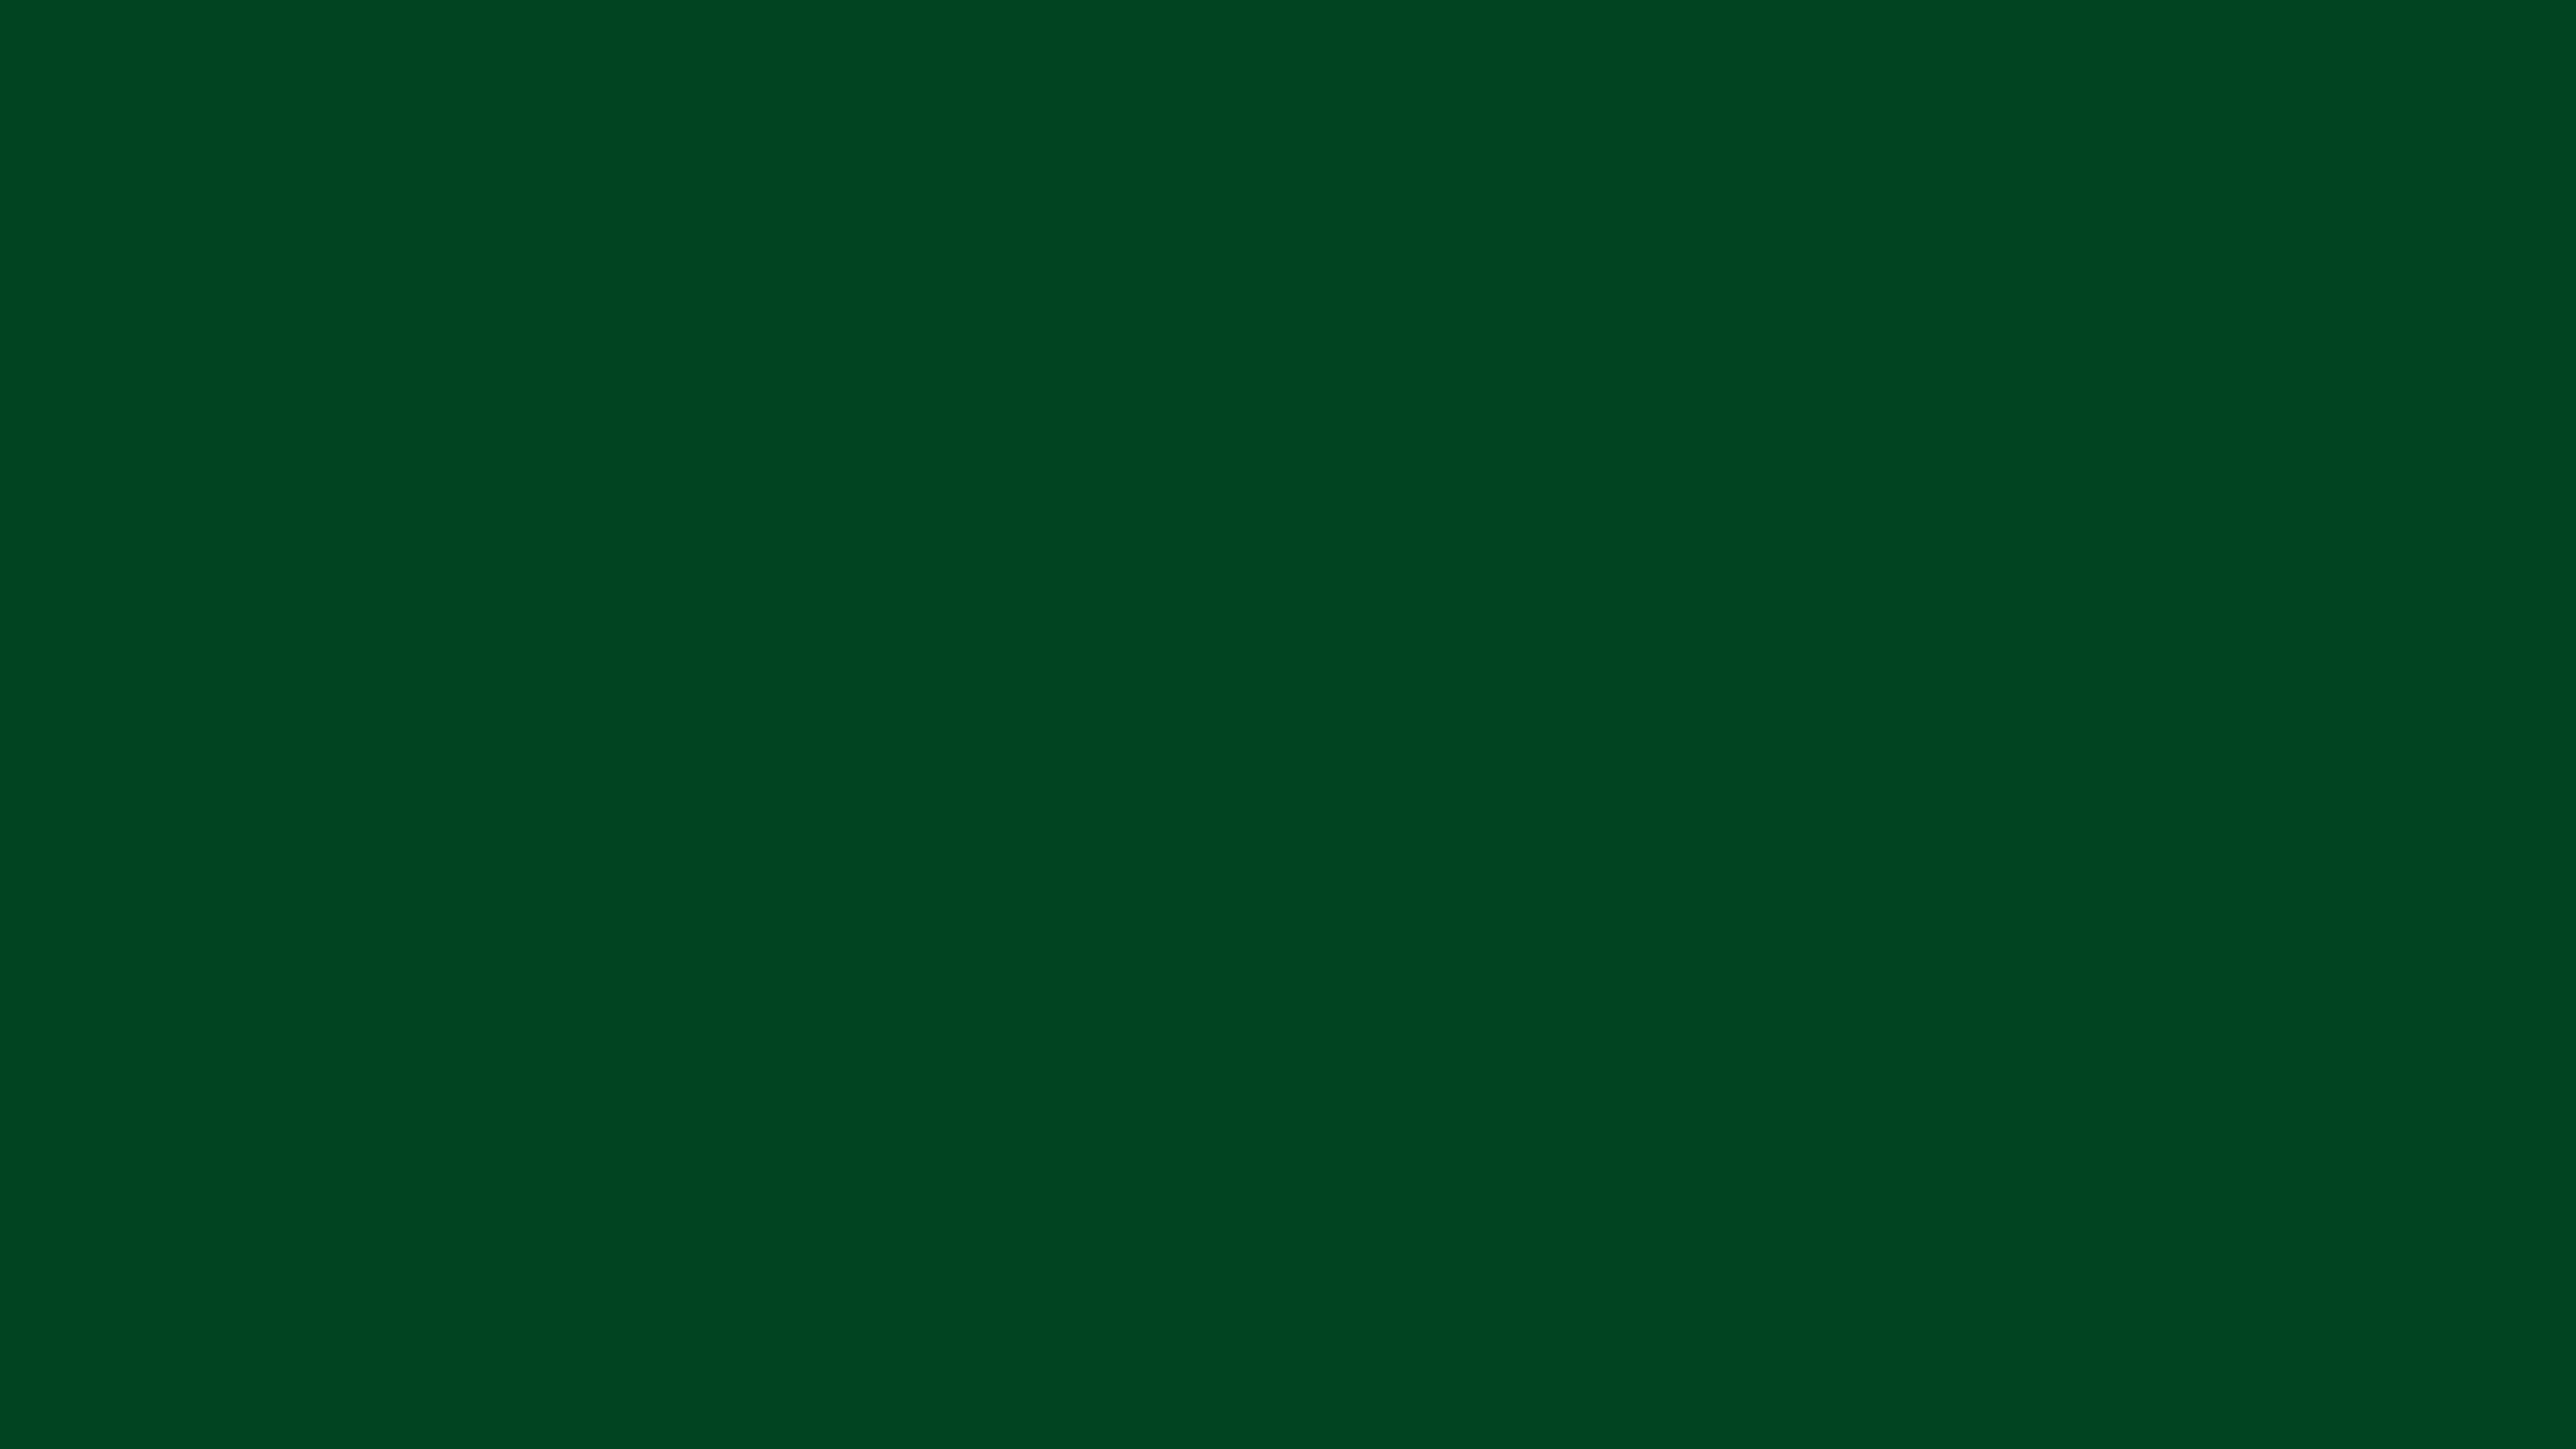 7680x4320 Forest Green Traditional Solid Color Background